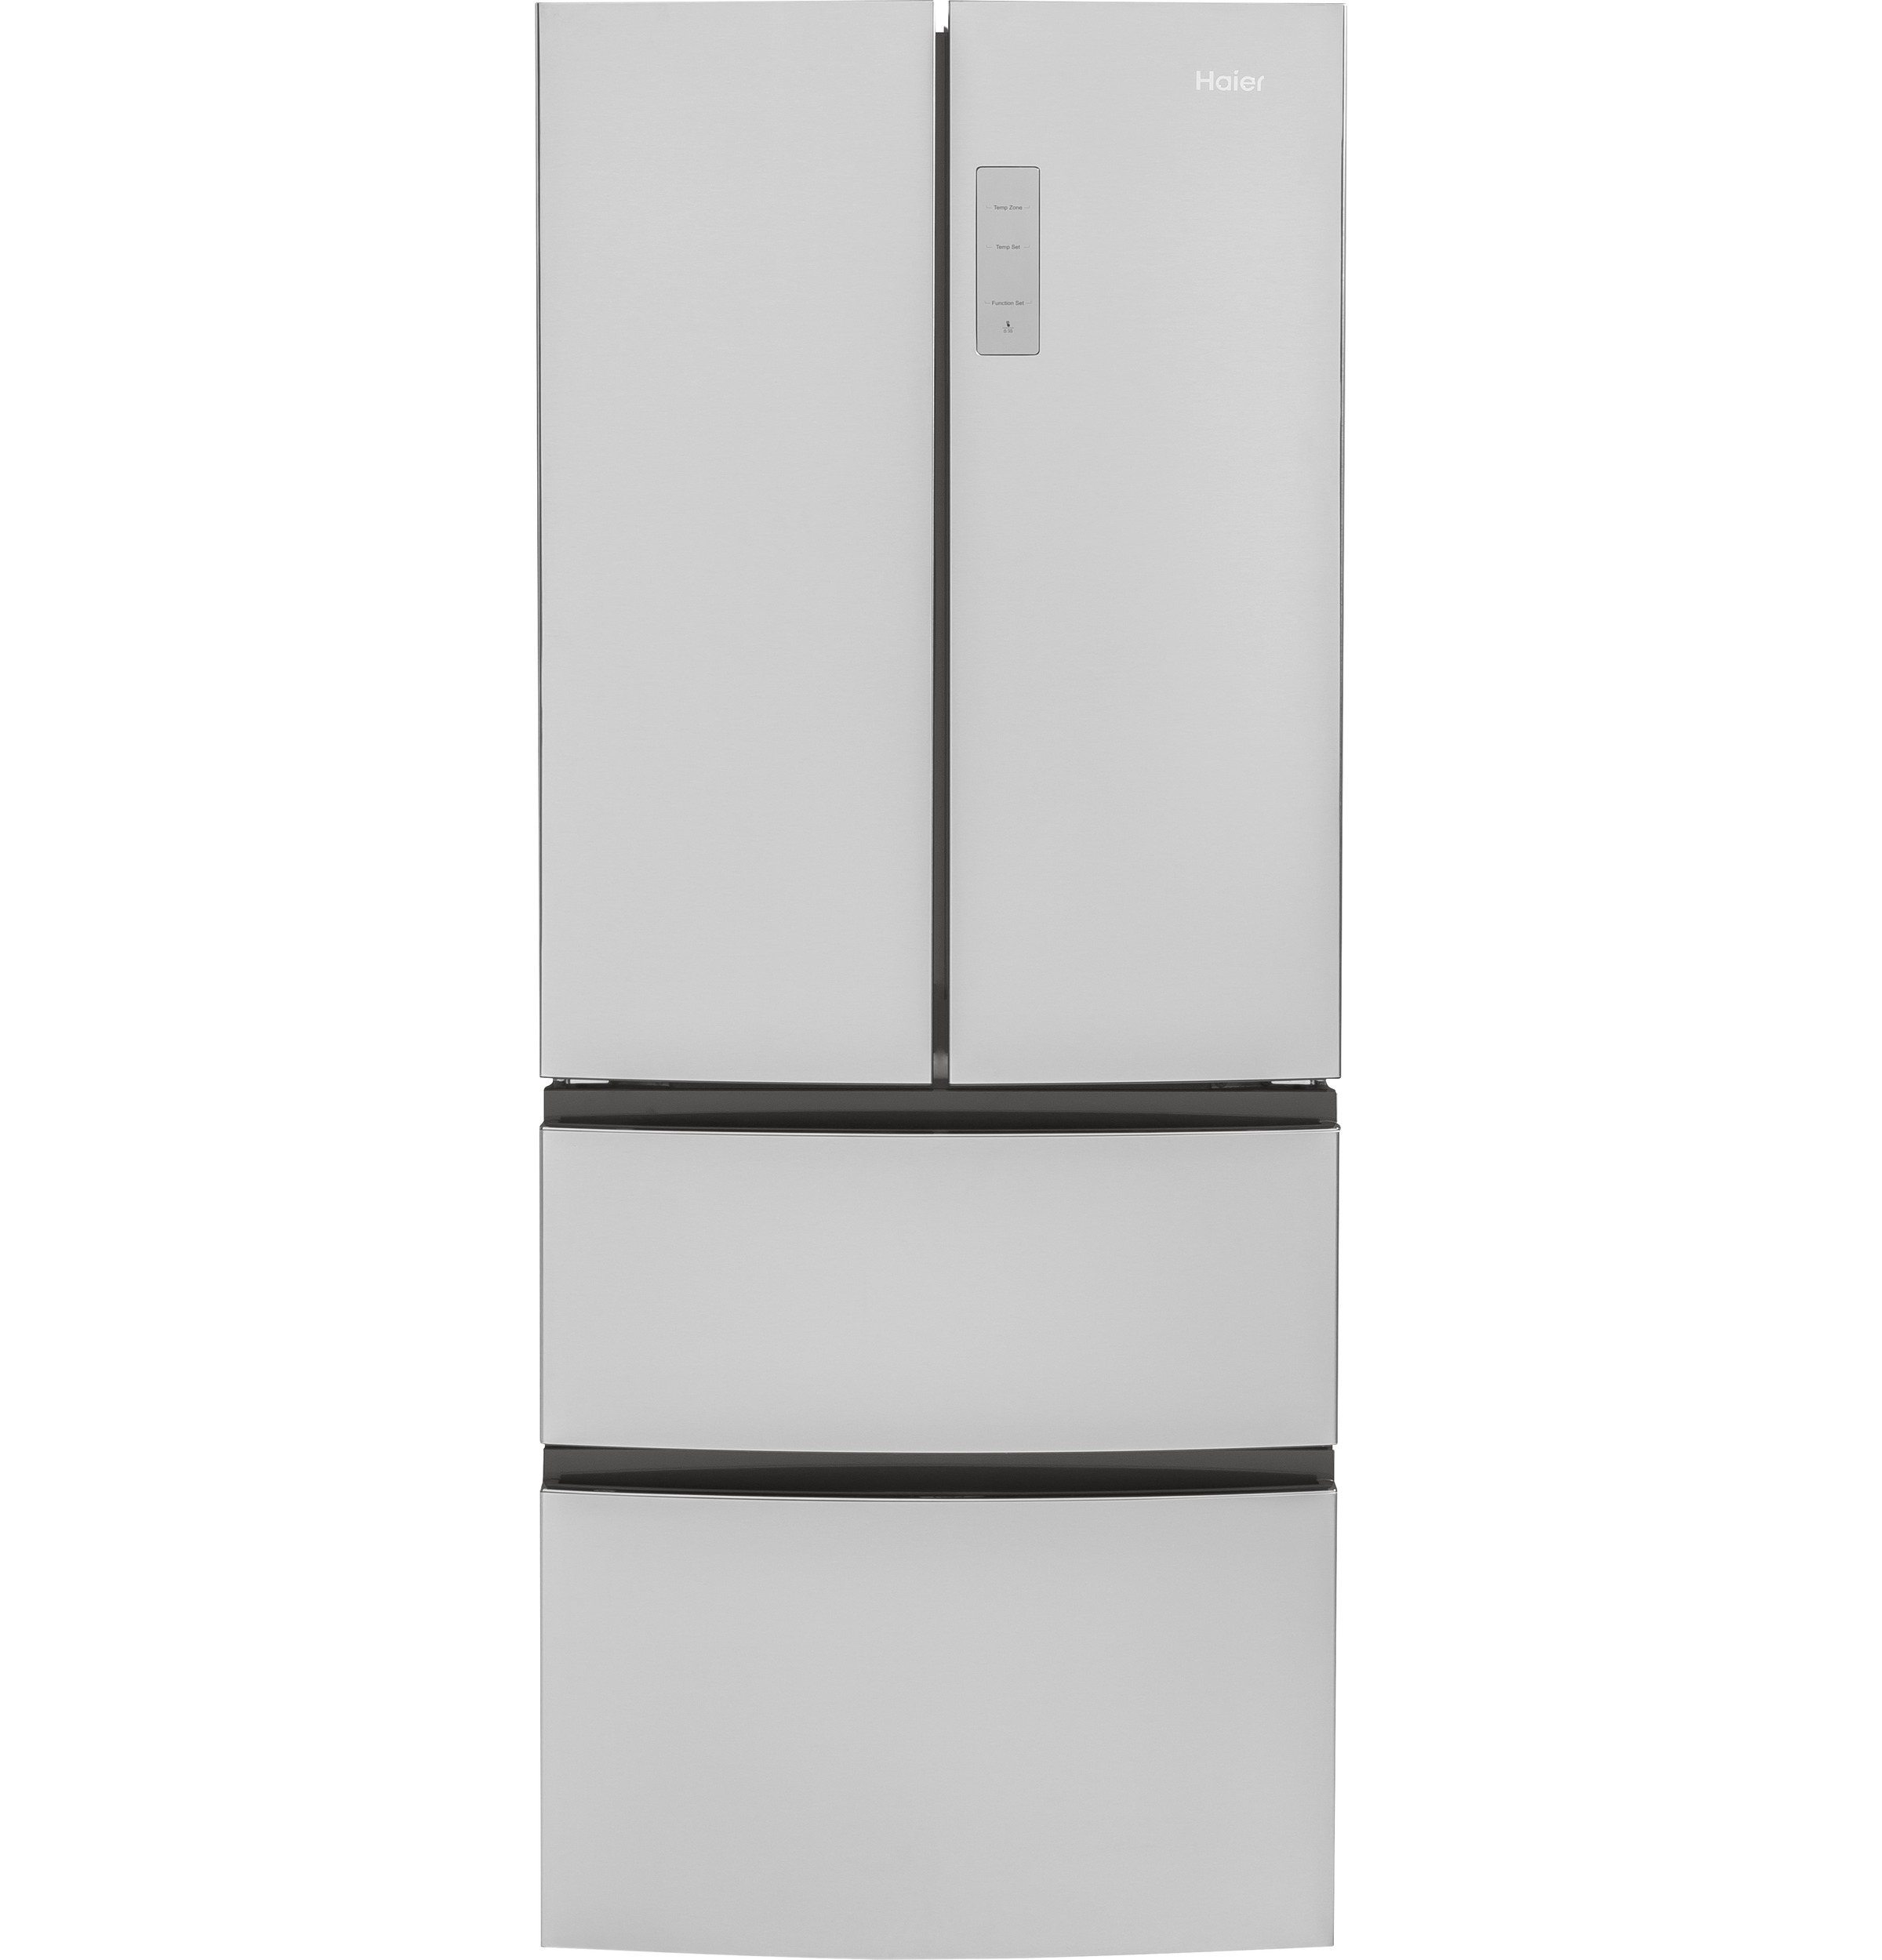 HRF15N3AGS -15 Cu. Ft. French Door Refrigerator | Haier ... on